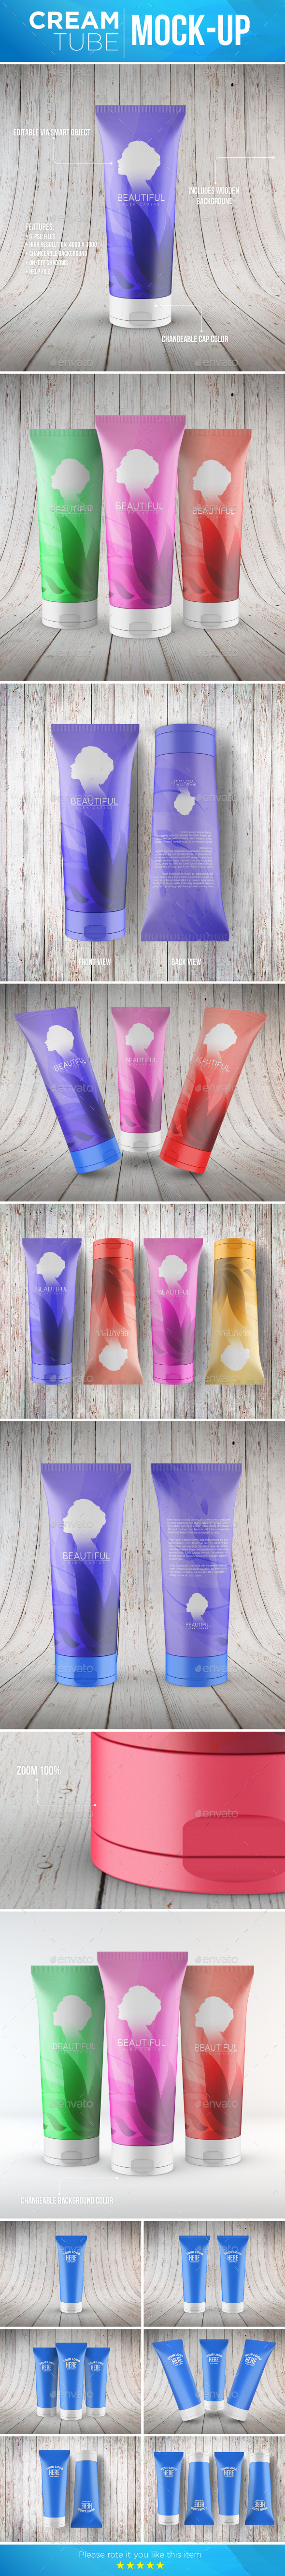 GraphicRiver Cream Tube Mock-Up 11904670